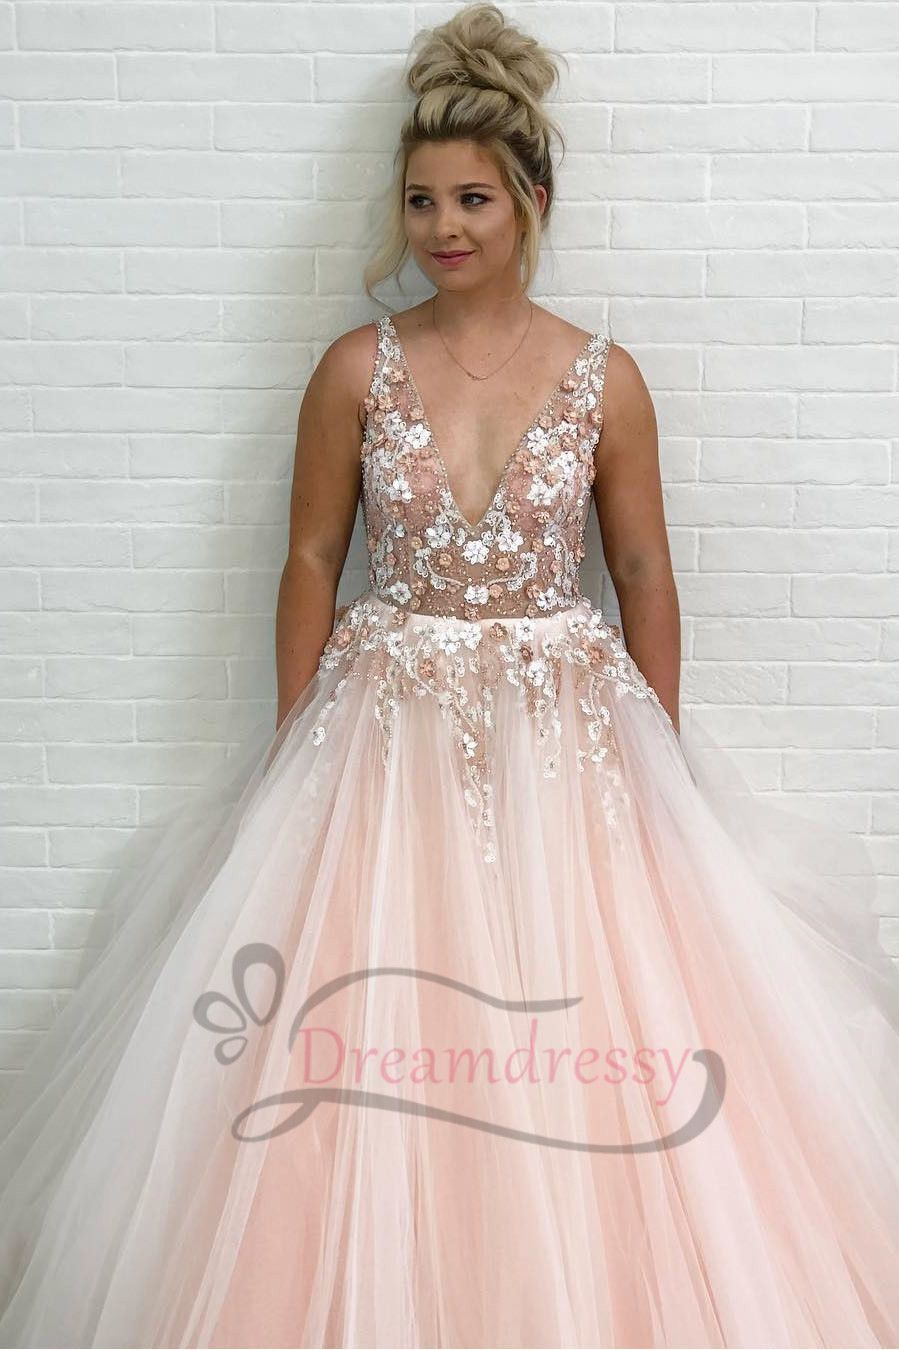 Princess pink long prom dress with flowers in prom